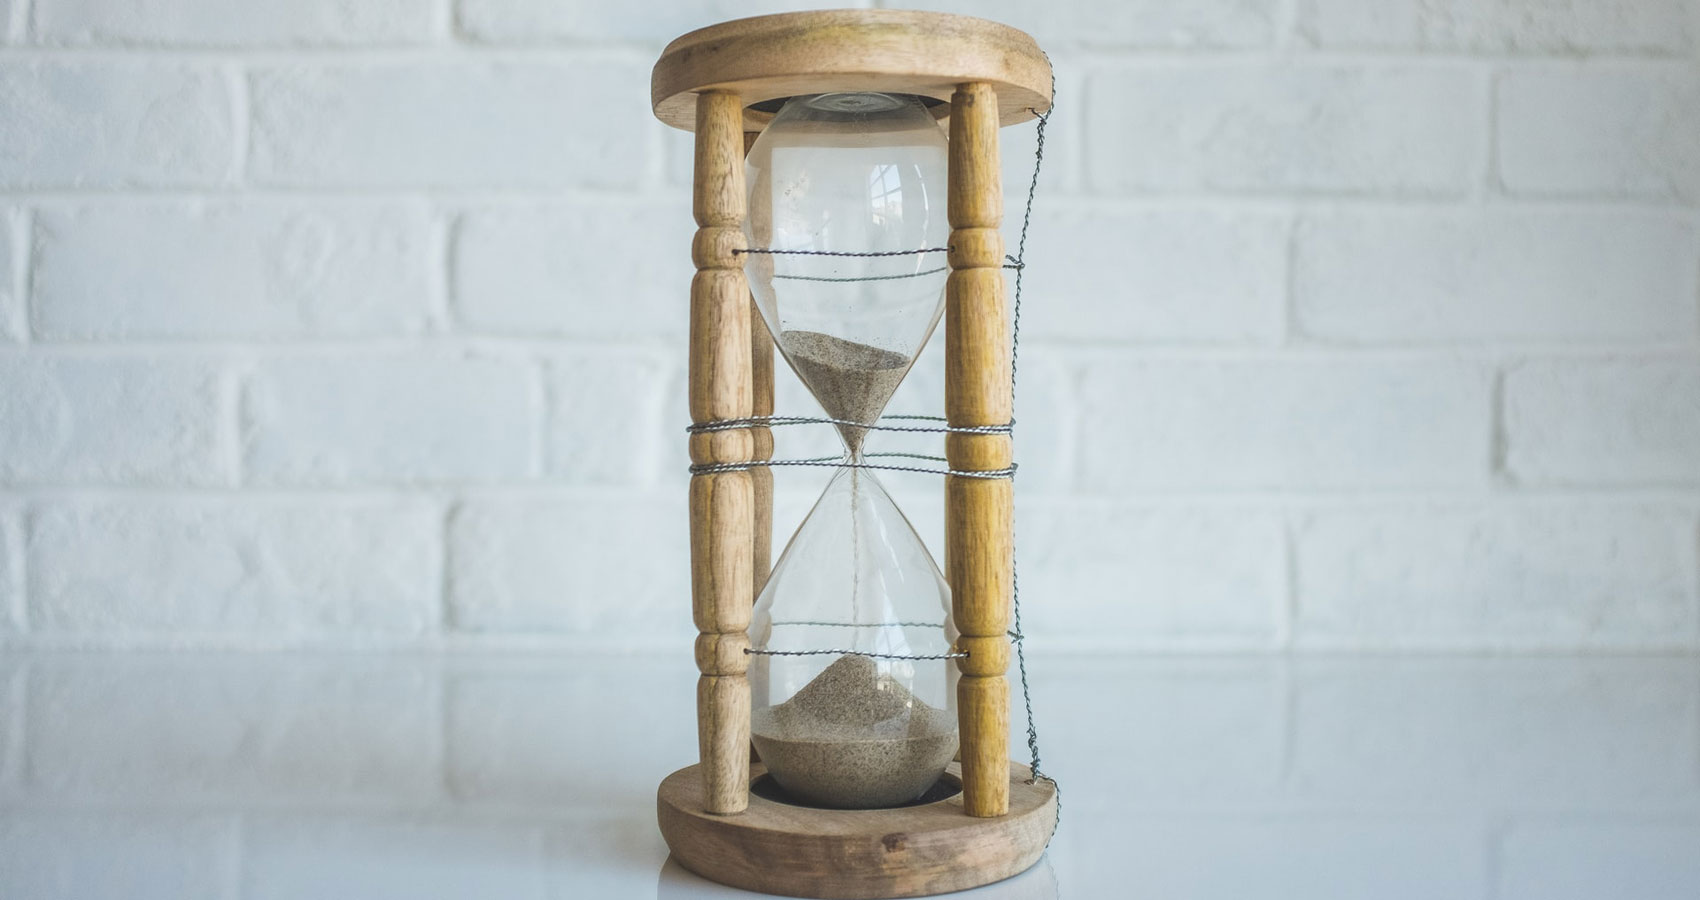 Stagnant Time, poetry written by Reza Raza at Spillwords.com